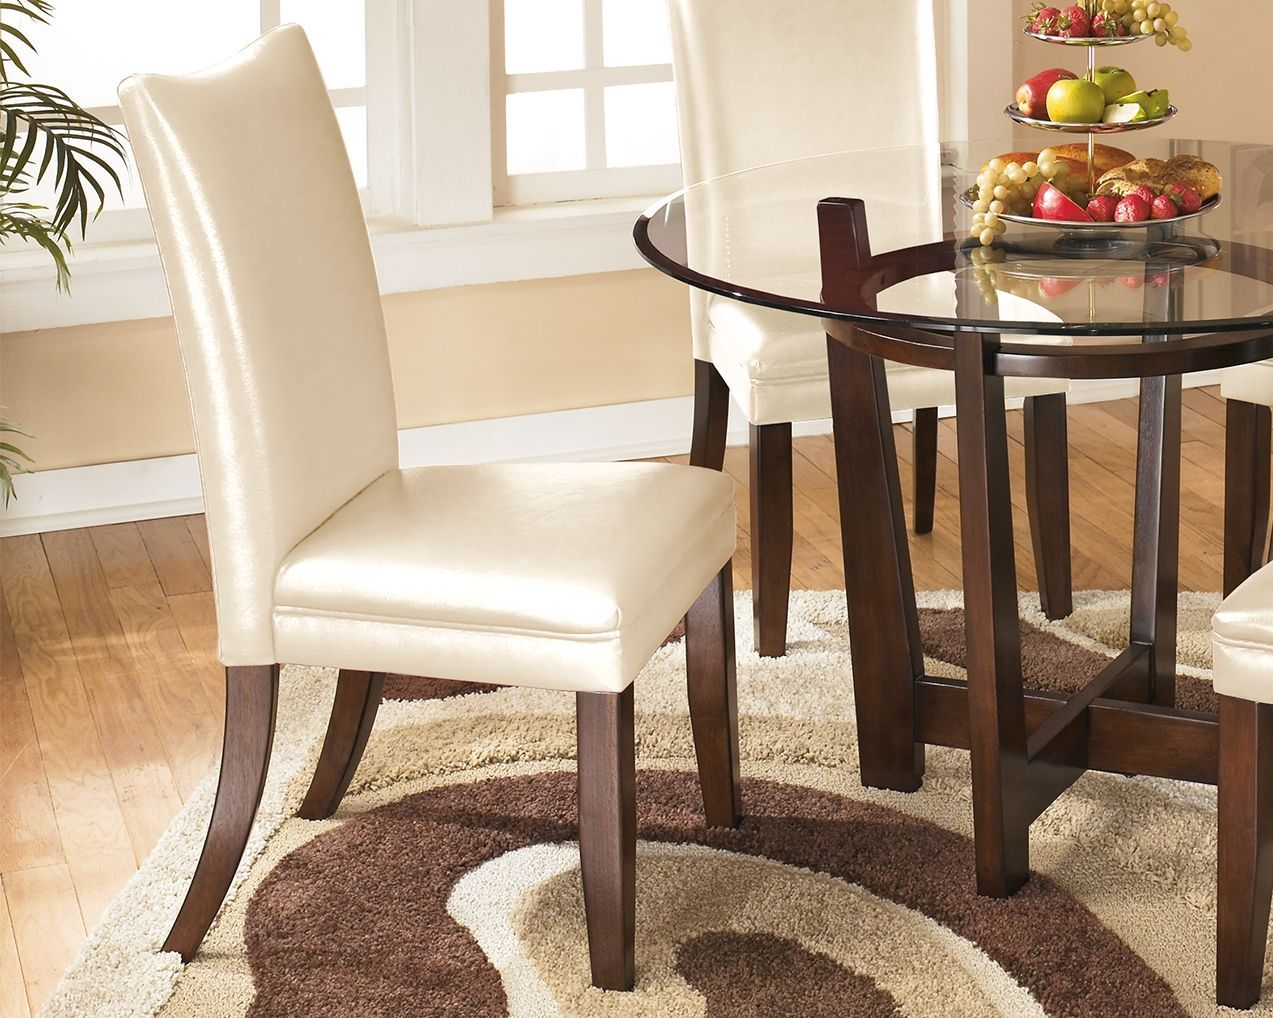 Charrell Dining Room Chair Set Of 2, Charrell Dining Room Chair